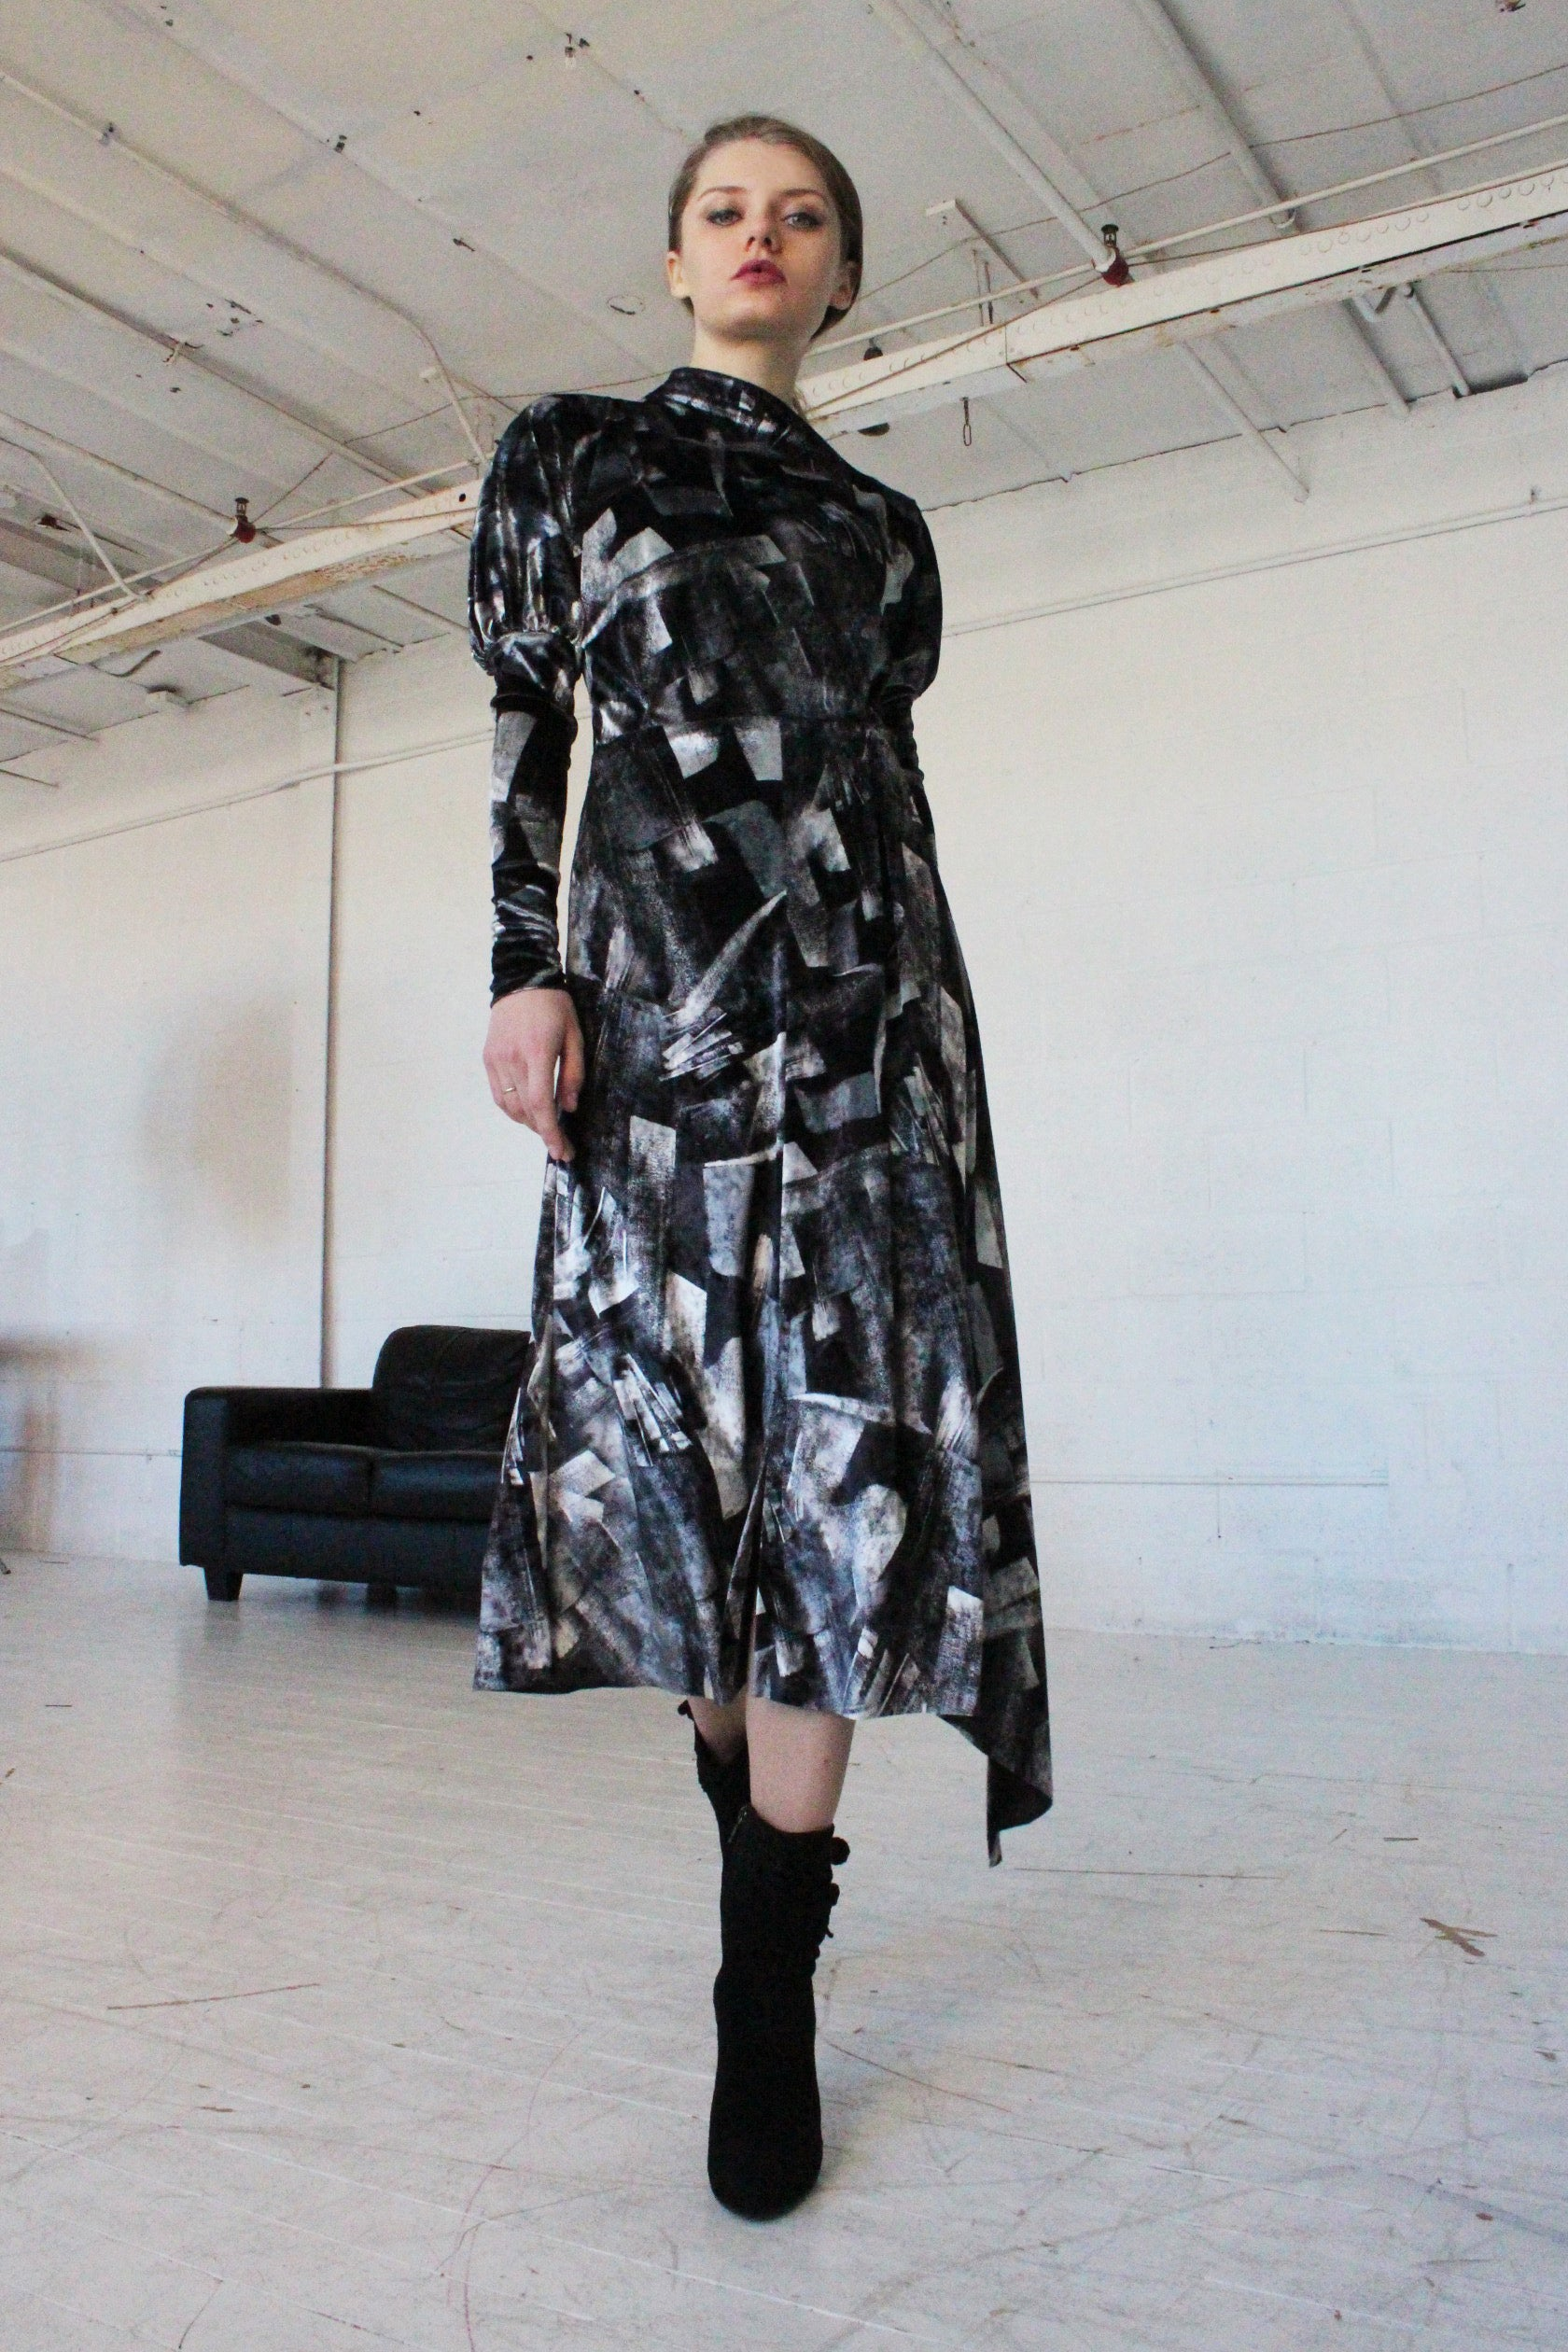 Ying Cai _ AW 21 Look 11 - 4